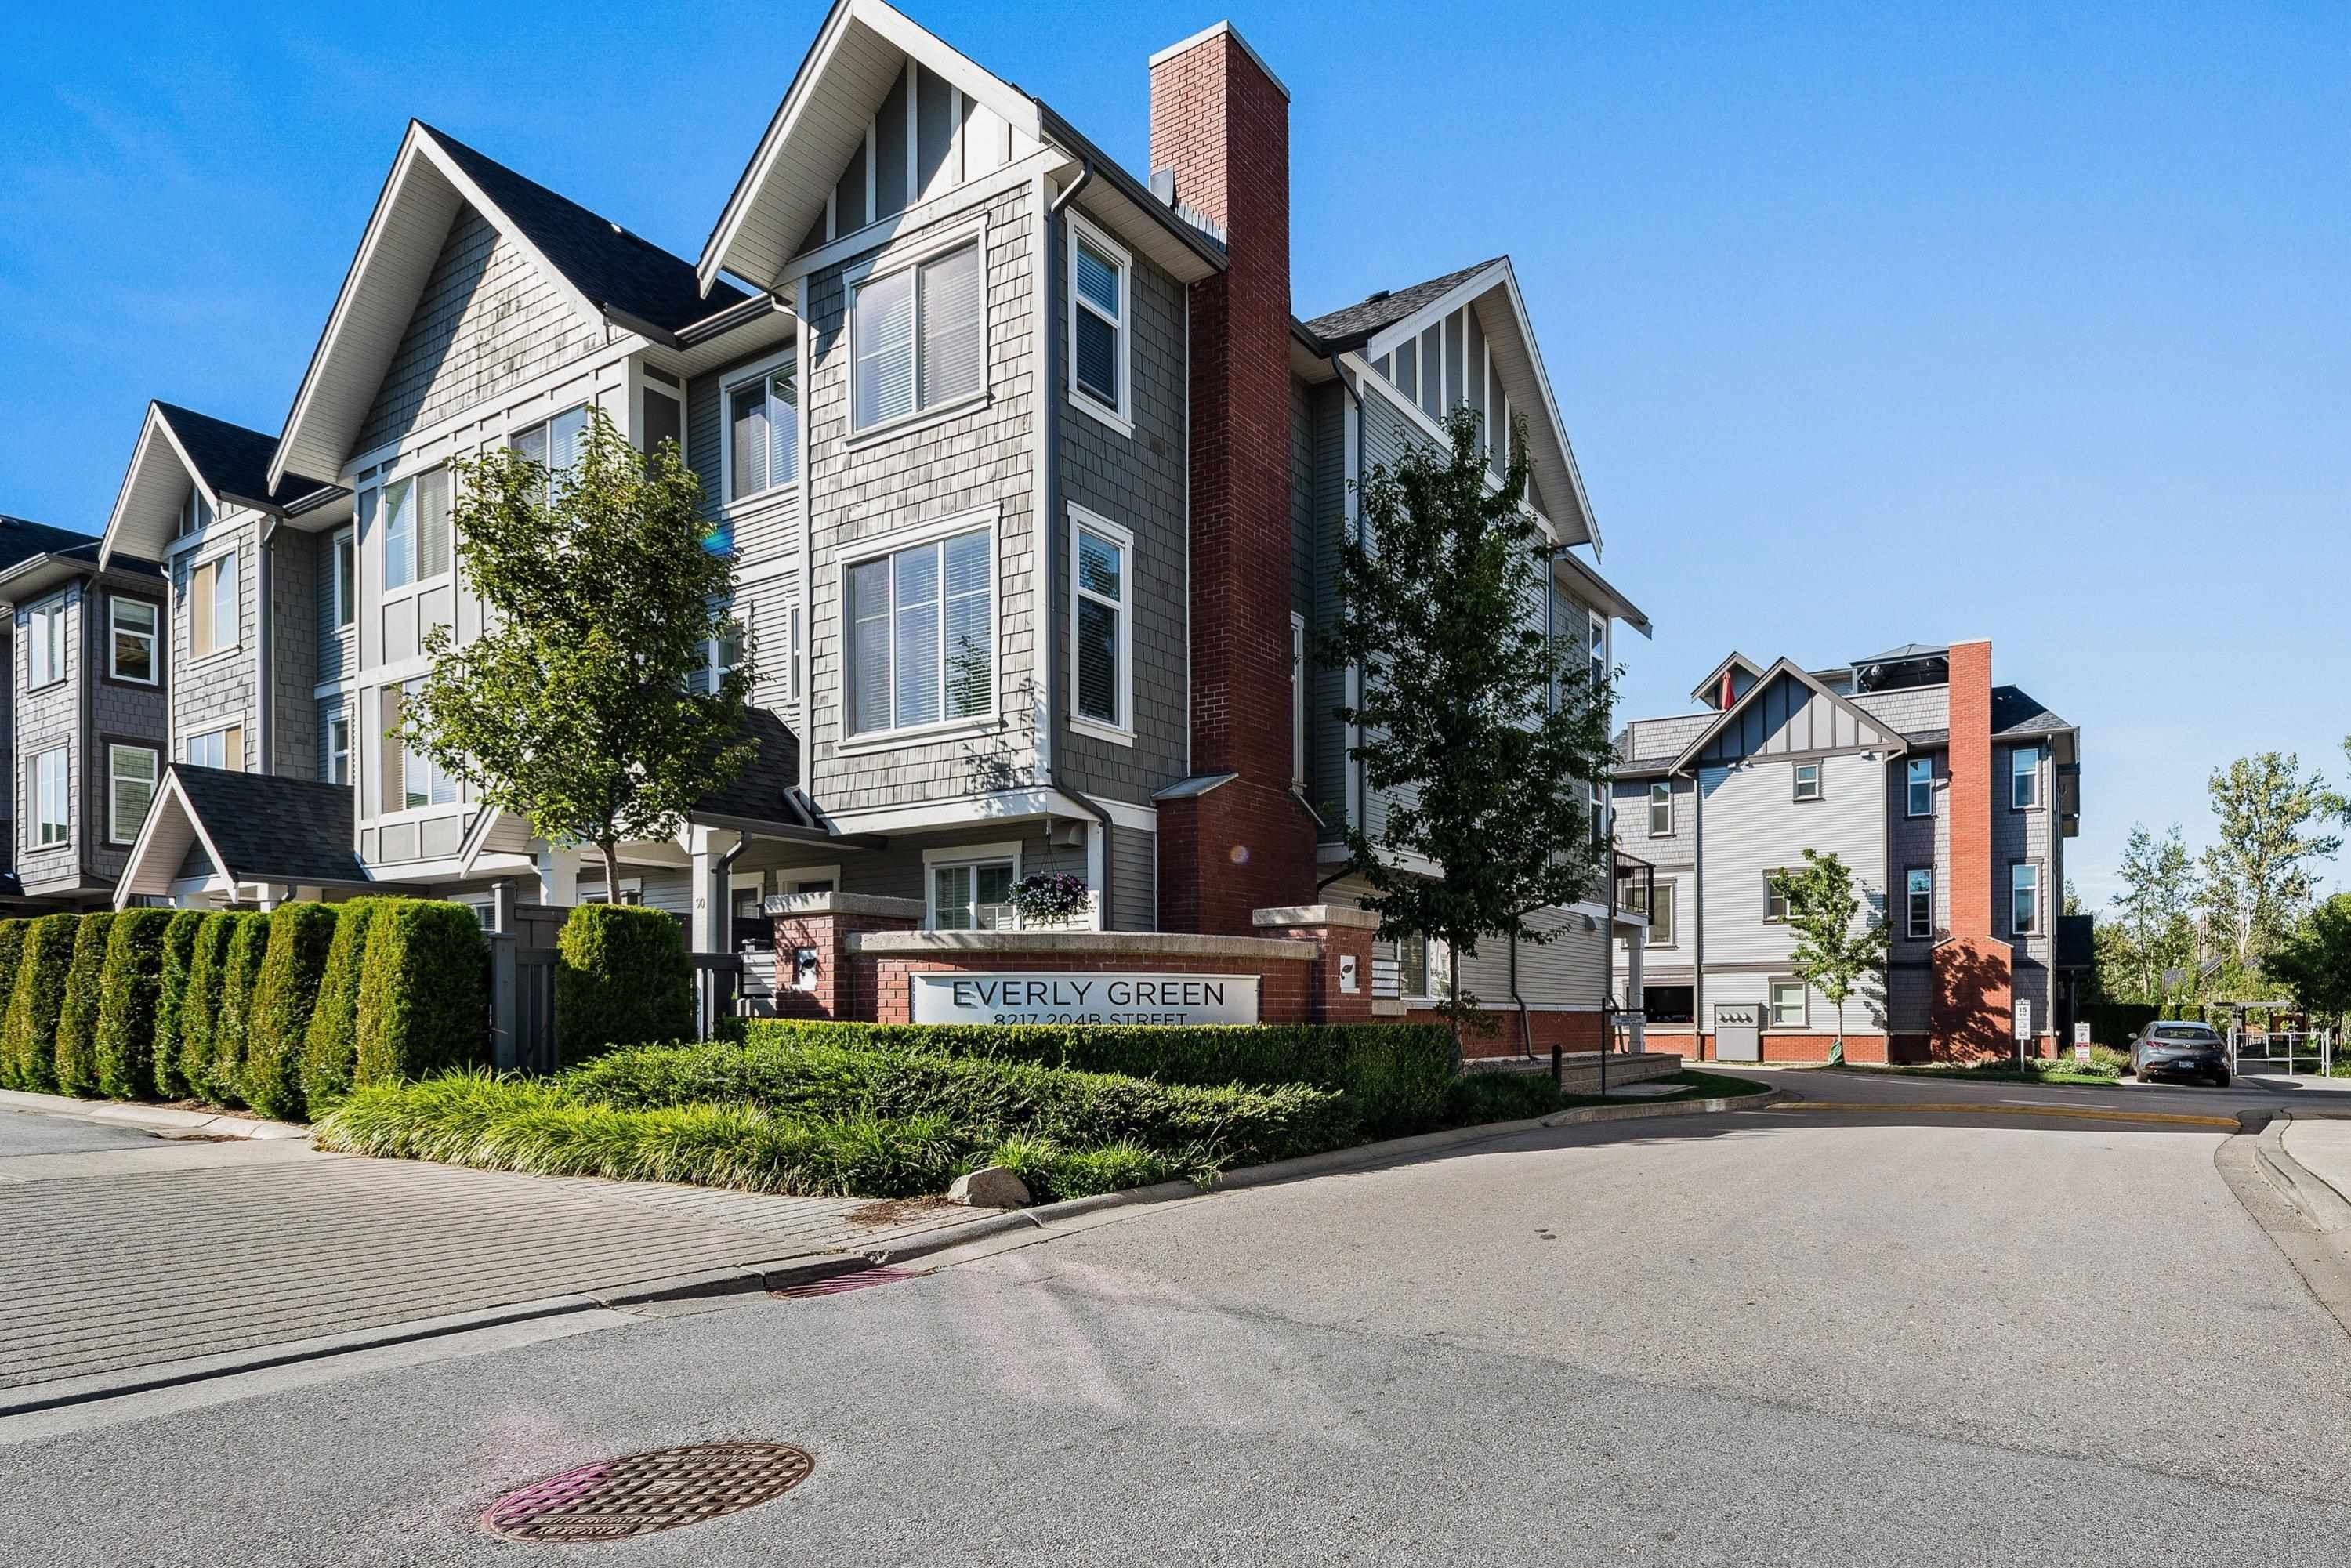 """Main Photo: 5 8217 204B Street in Langley: Willoughby Heights Townhouse for sale in """"Everly Green"""" : MLS®# R2616623"""